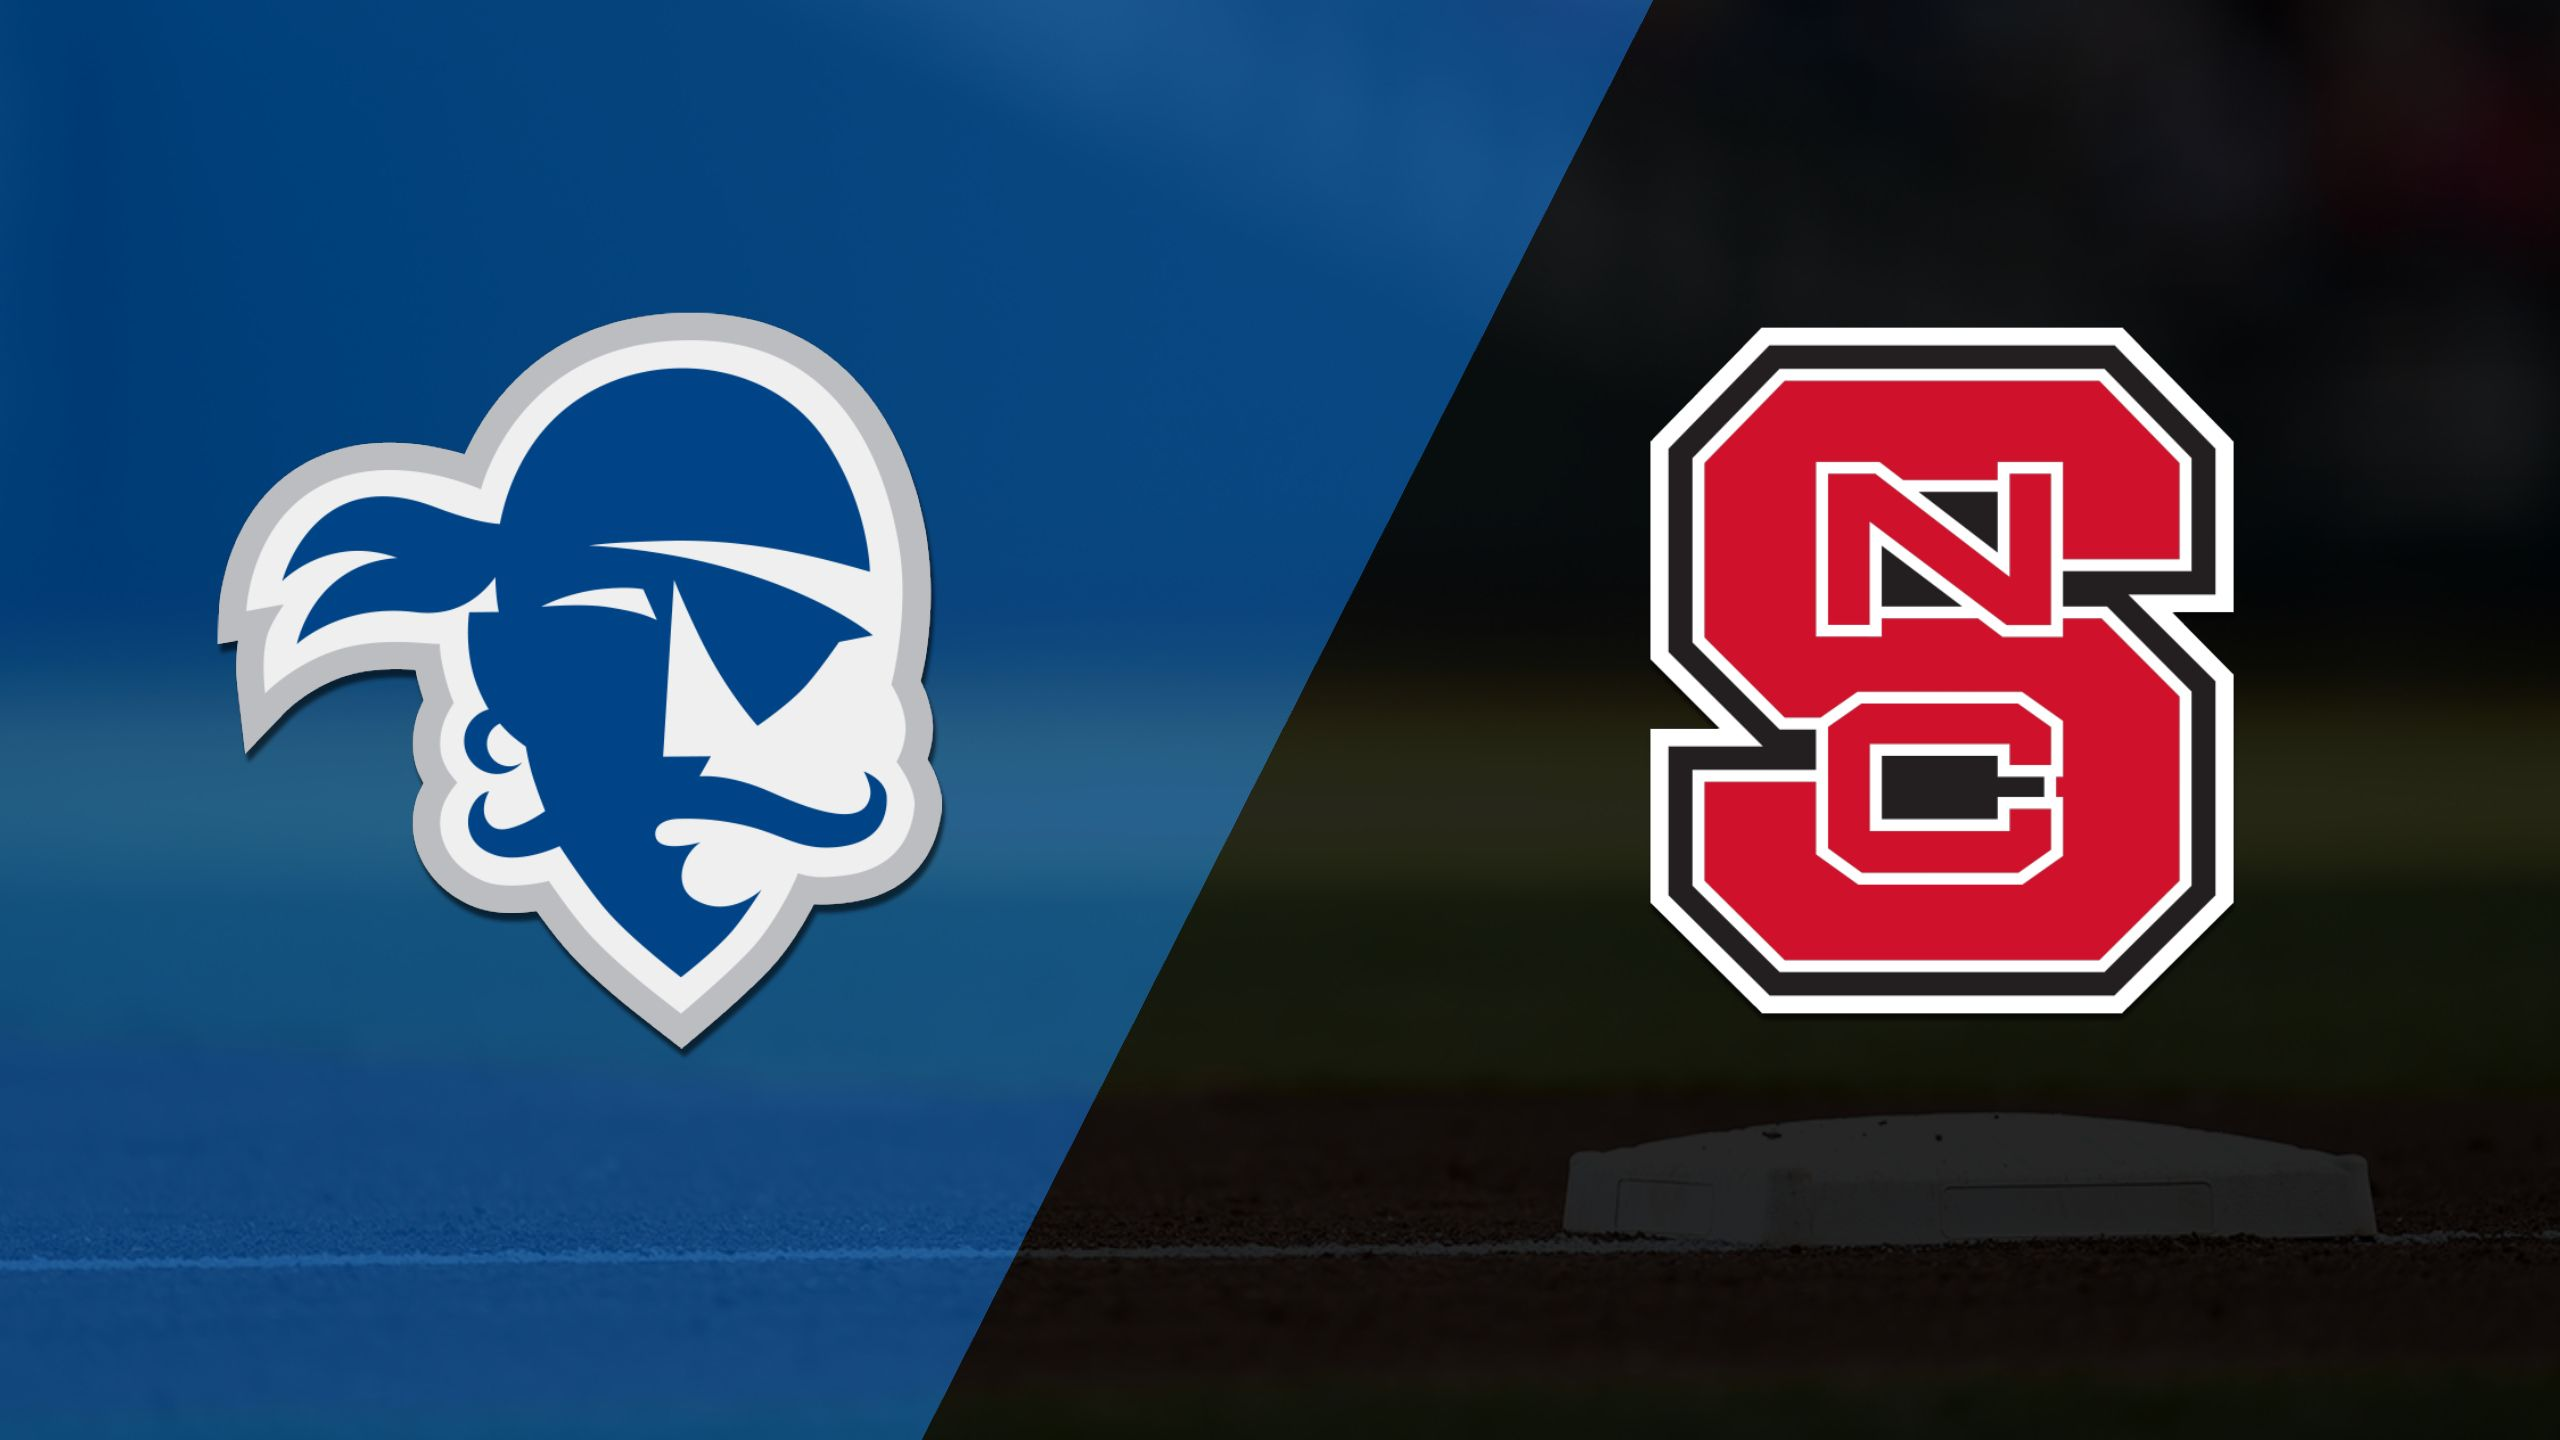 Seton Hall vs. #25 NC State (Baseball)